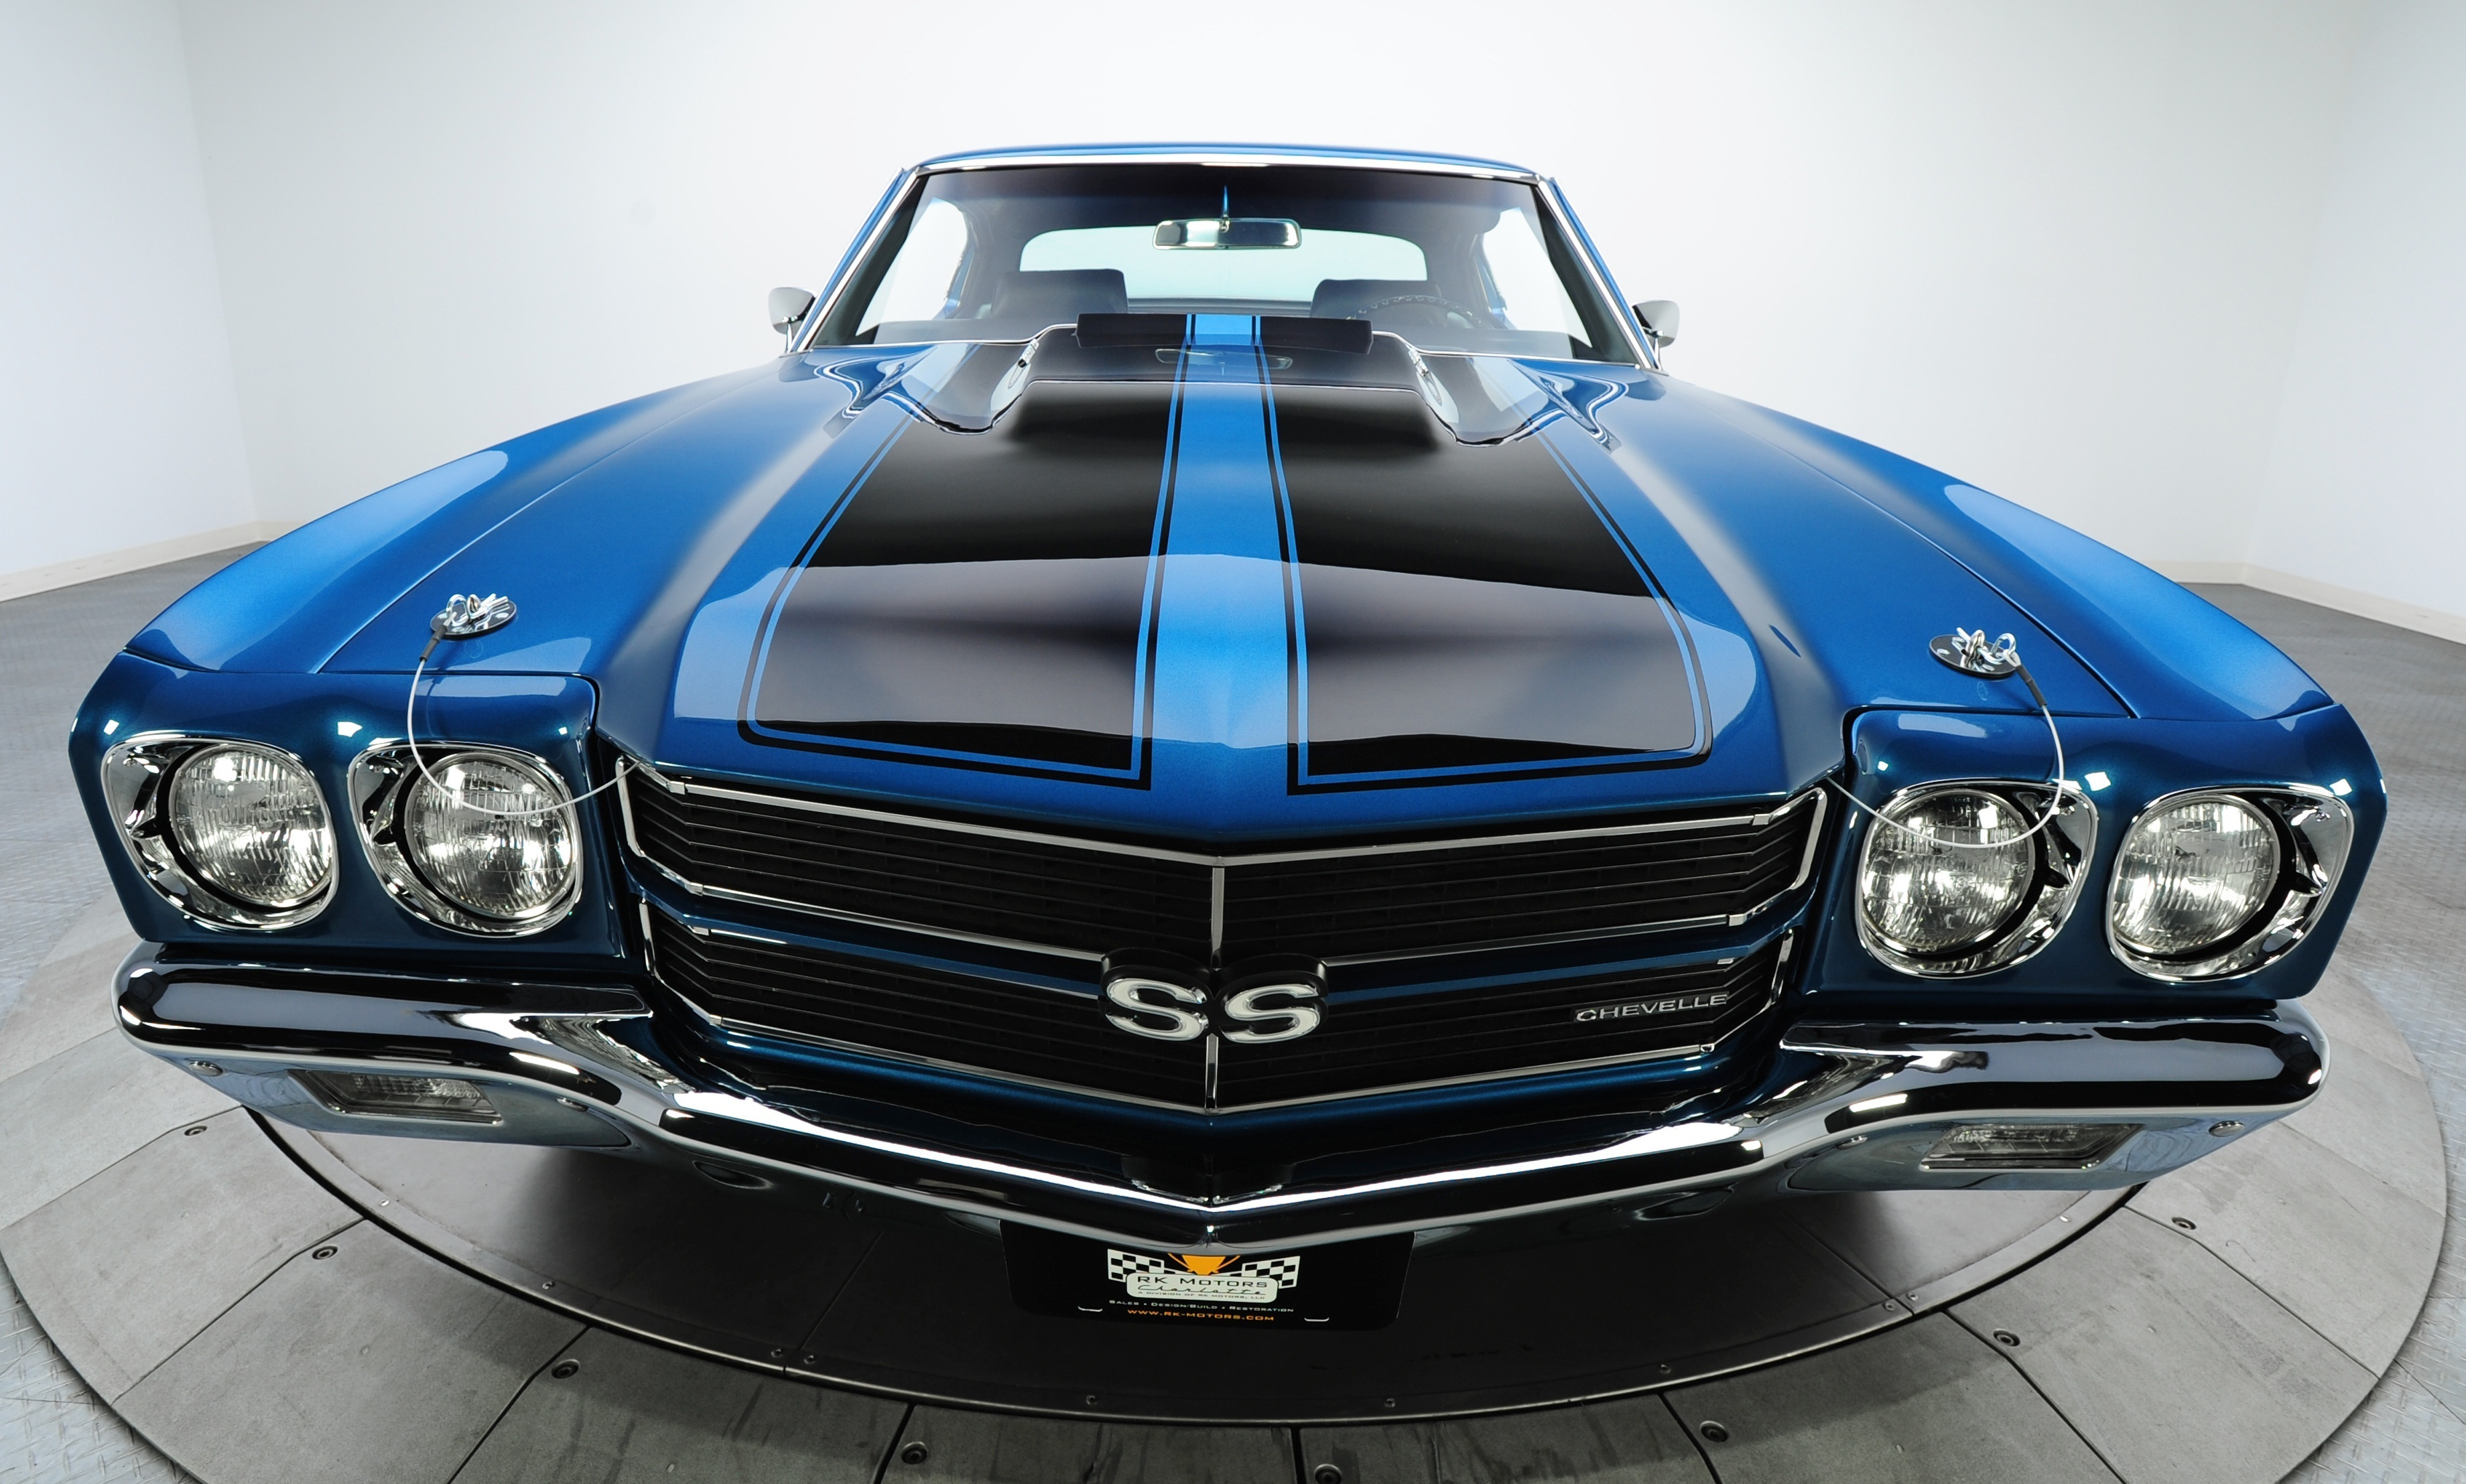 21 Chevrolet Chevelle SS HD Wallpapers  Backgrounds  Wallpaper Abyss